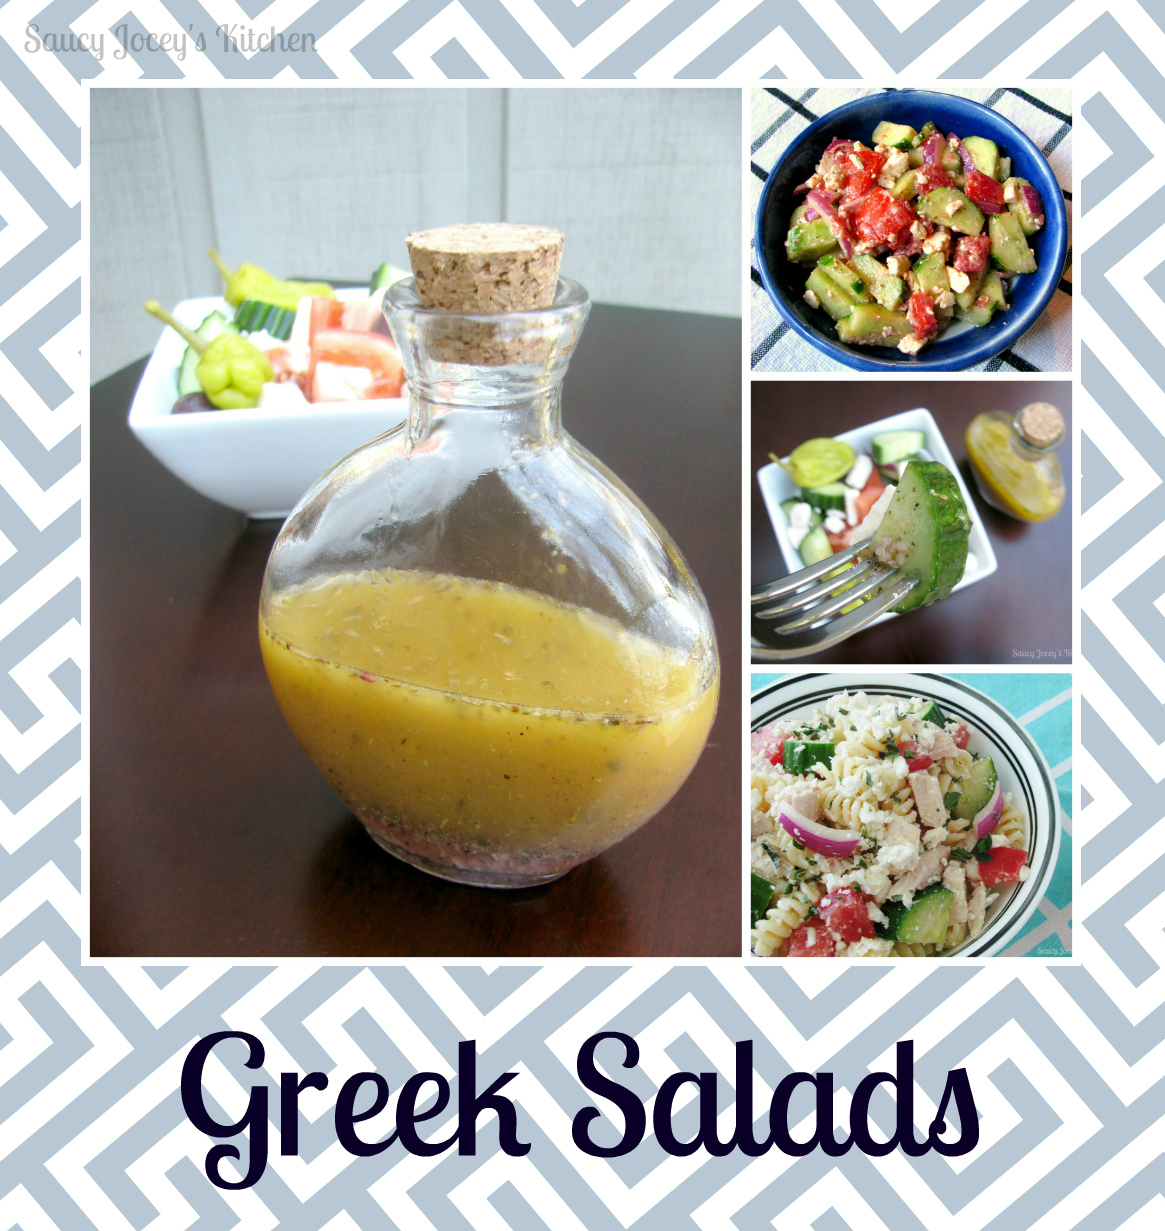 Saucy joceys kitchen 2013 to my greek culture when im cooking below are some recipes from my family some from me and there is a whole recipe book full of more to come enjoy forumfinder Choice Image